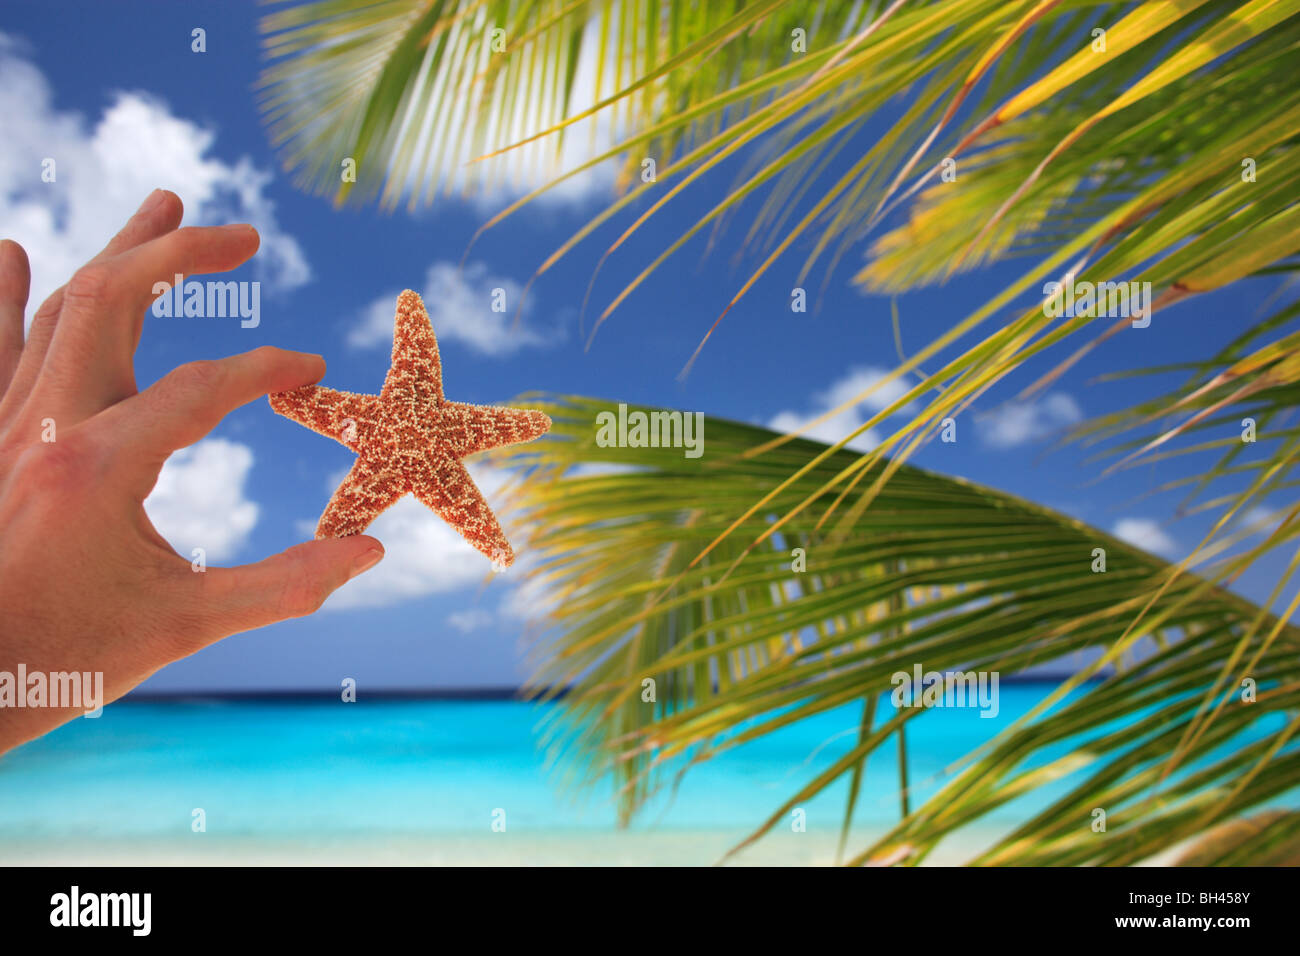 A man's hand holding a small starfish in the air against palm trees on a deserted tropical beach - Stock Image